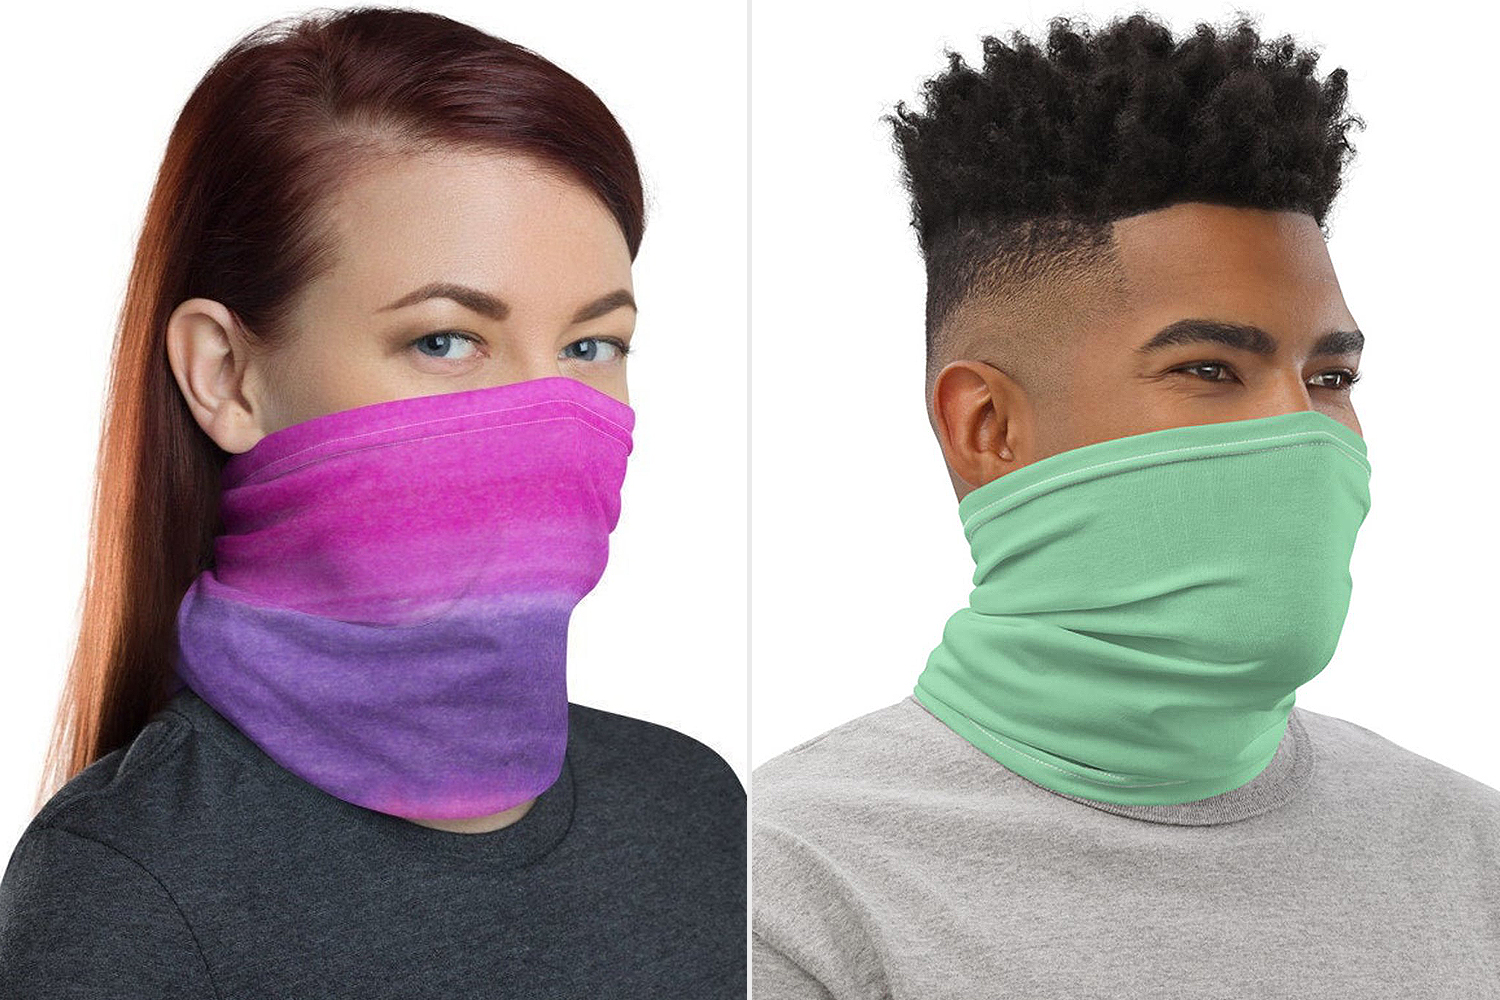 Etsy face coverings